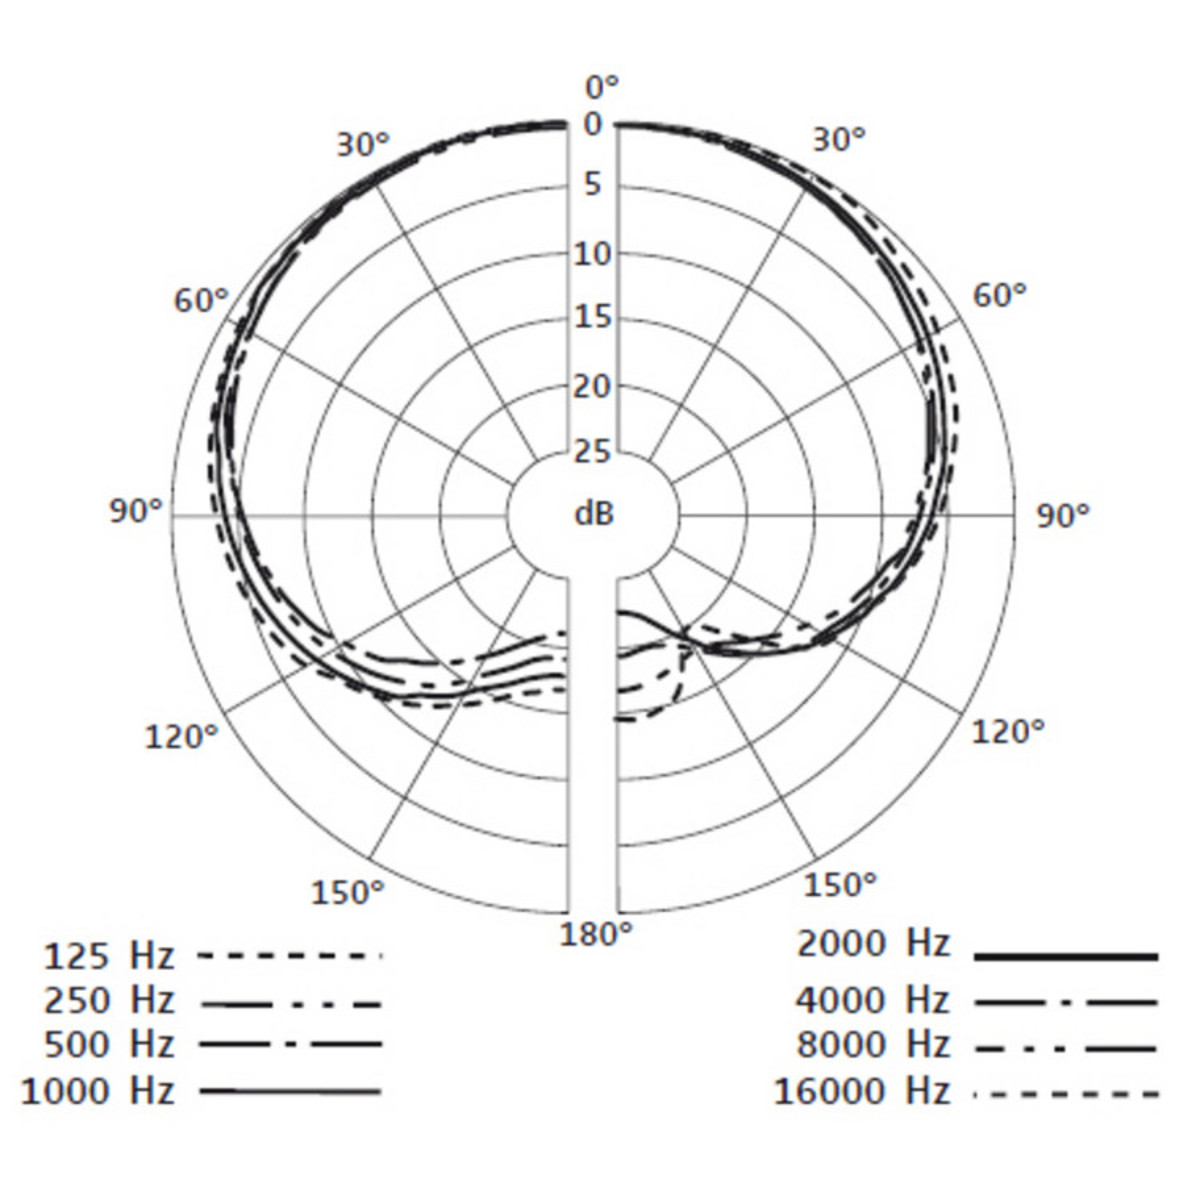 Sennheiser E908 D Condenser Microphone For Drums At Gear4musiccom Diagram In This You Can See